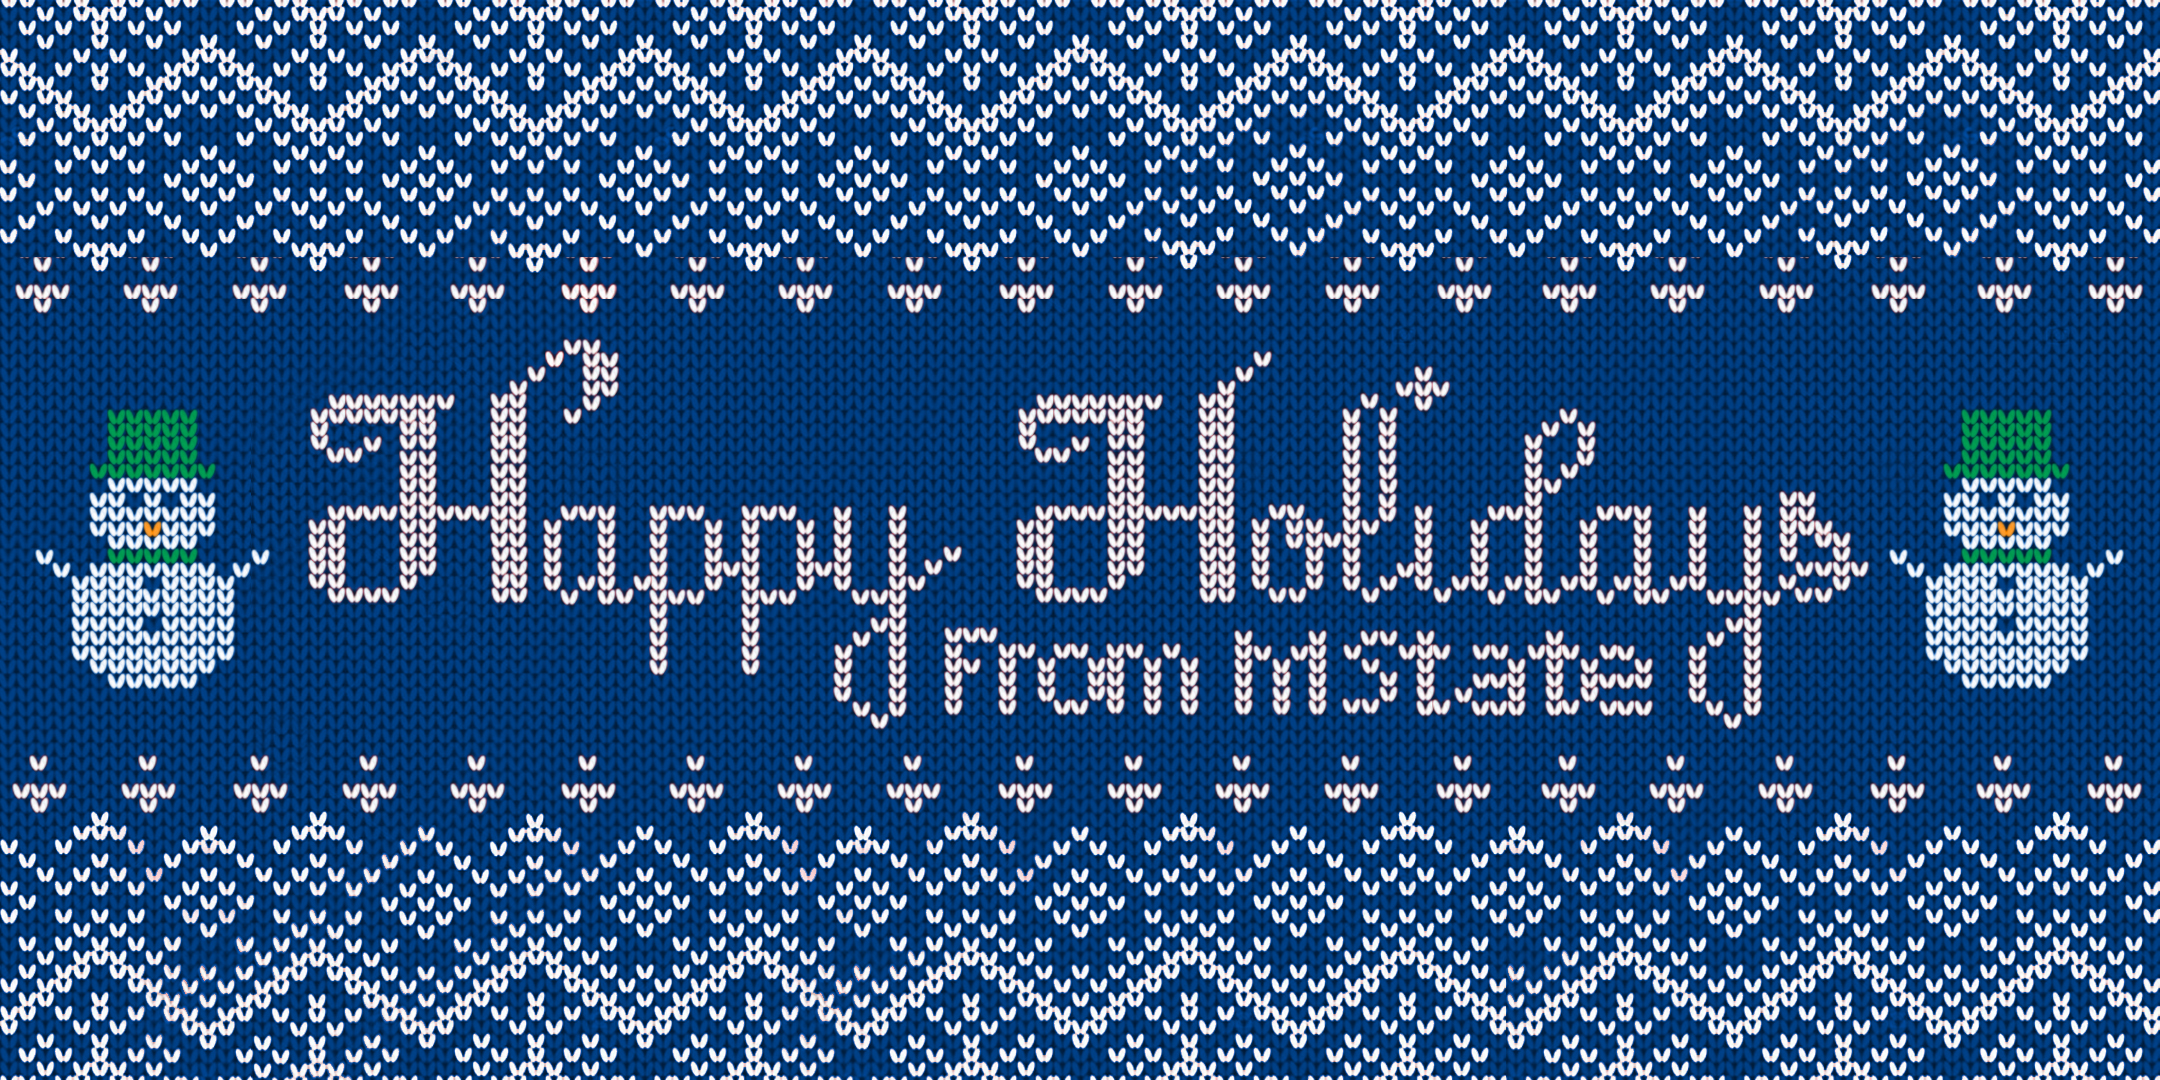 Happy holidays from M State